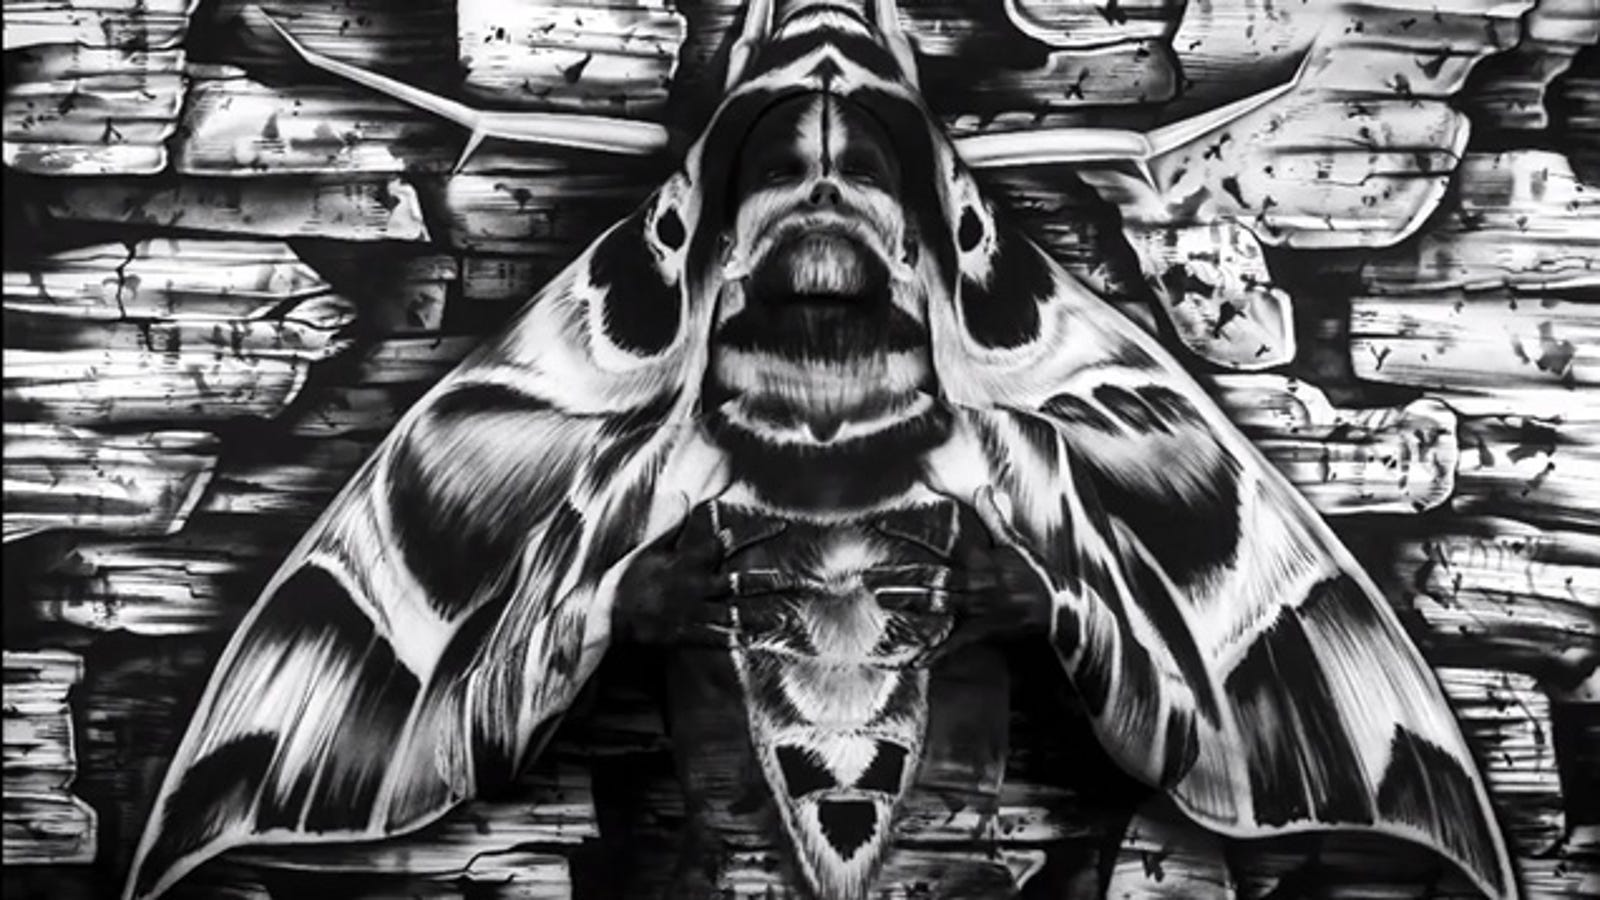 There's a woman in bodypaint hidden in this moth